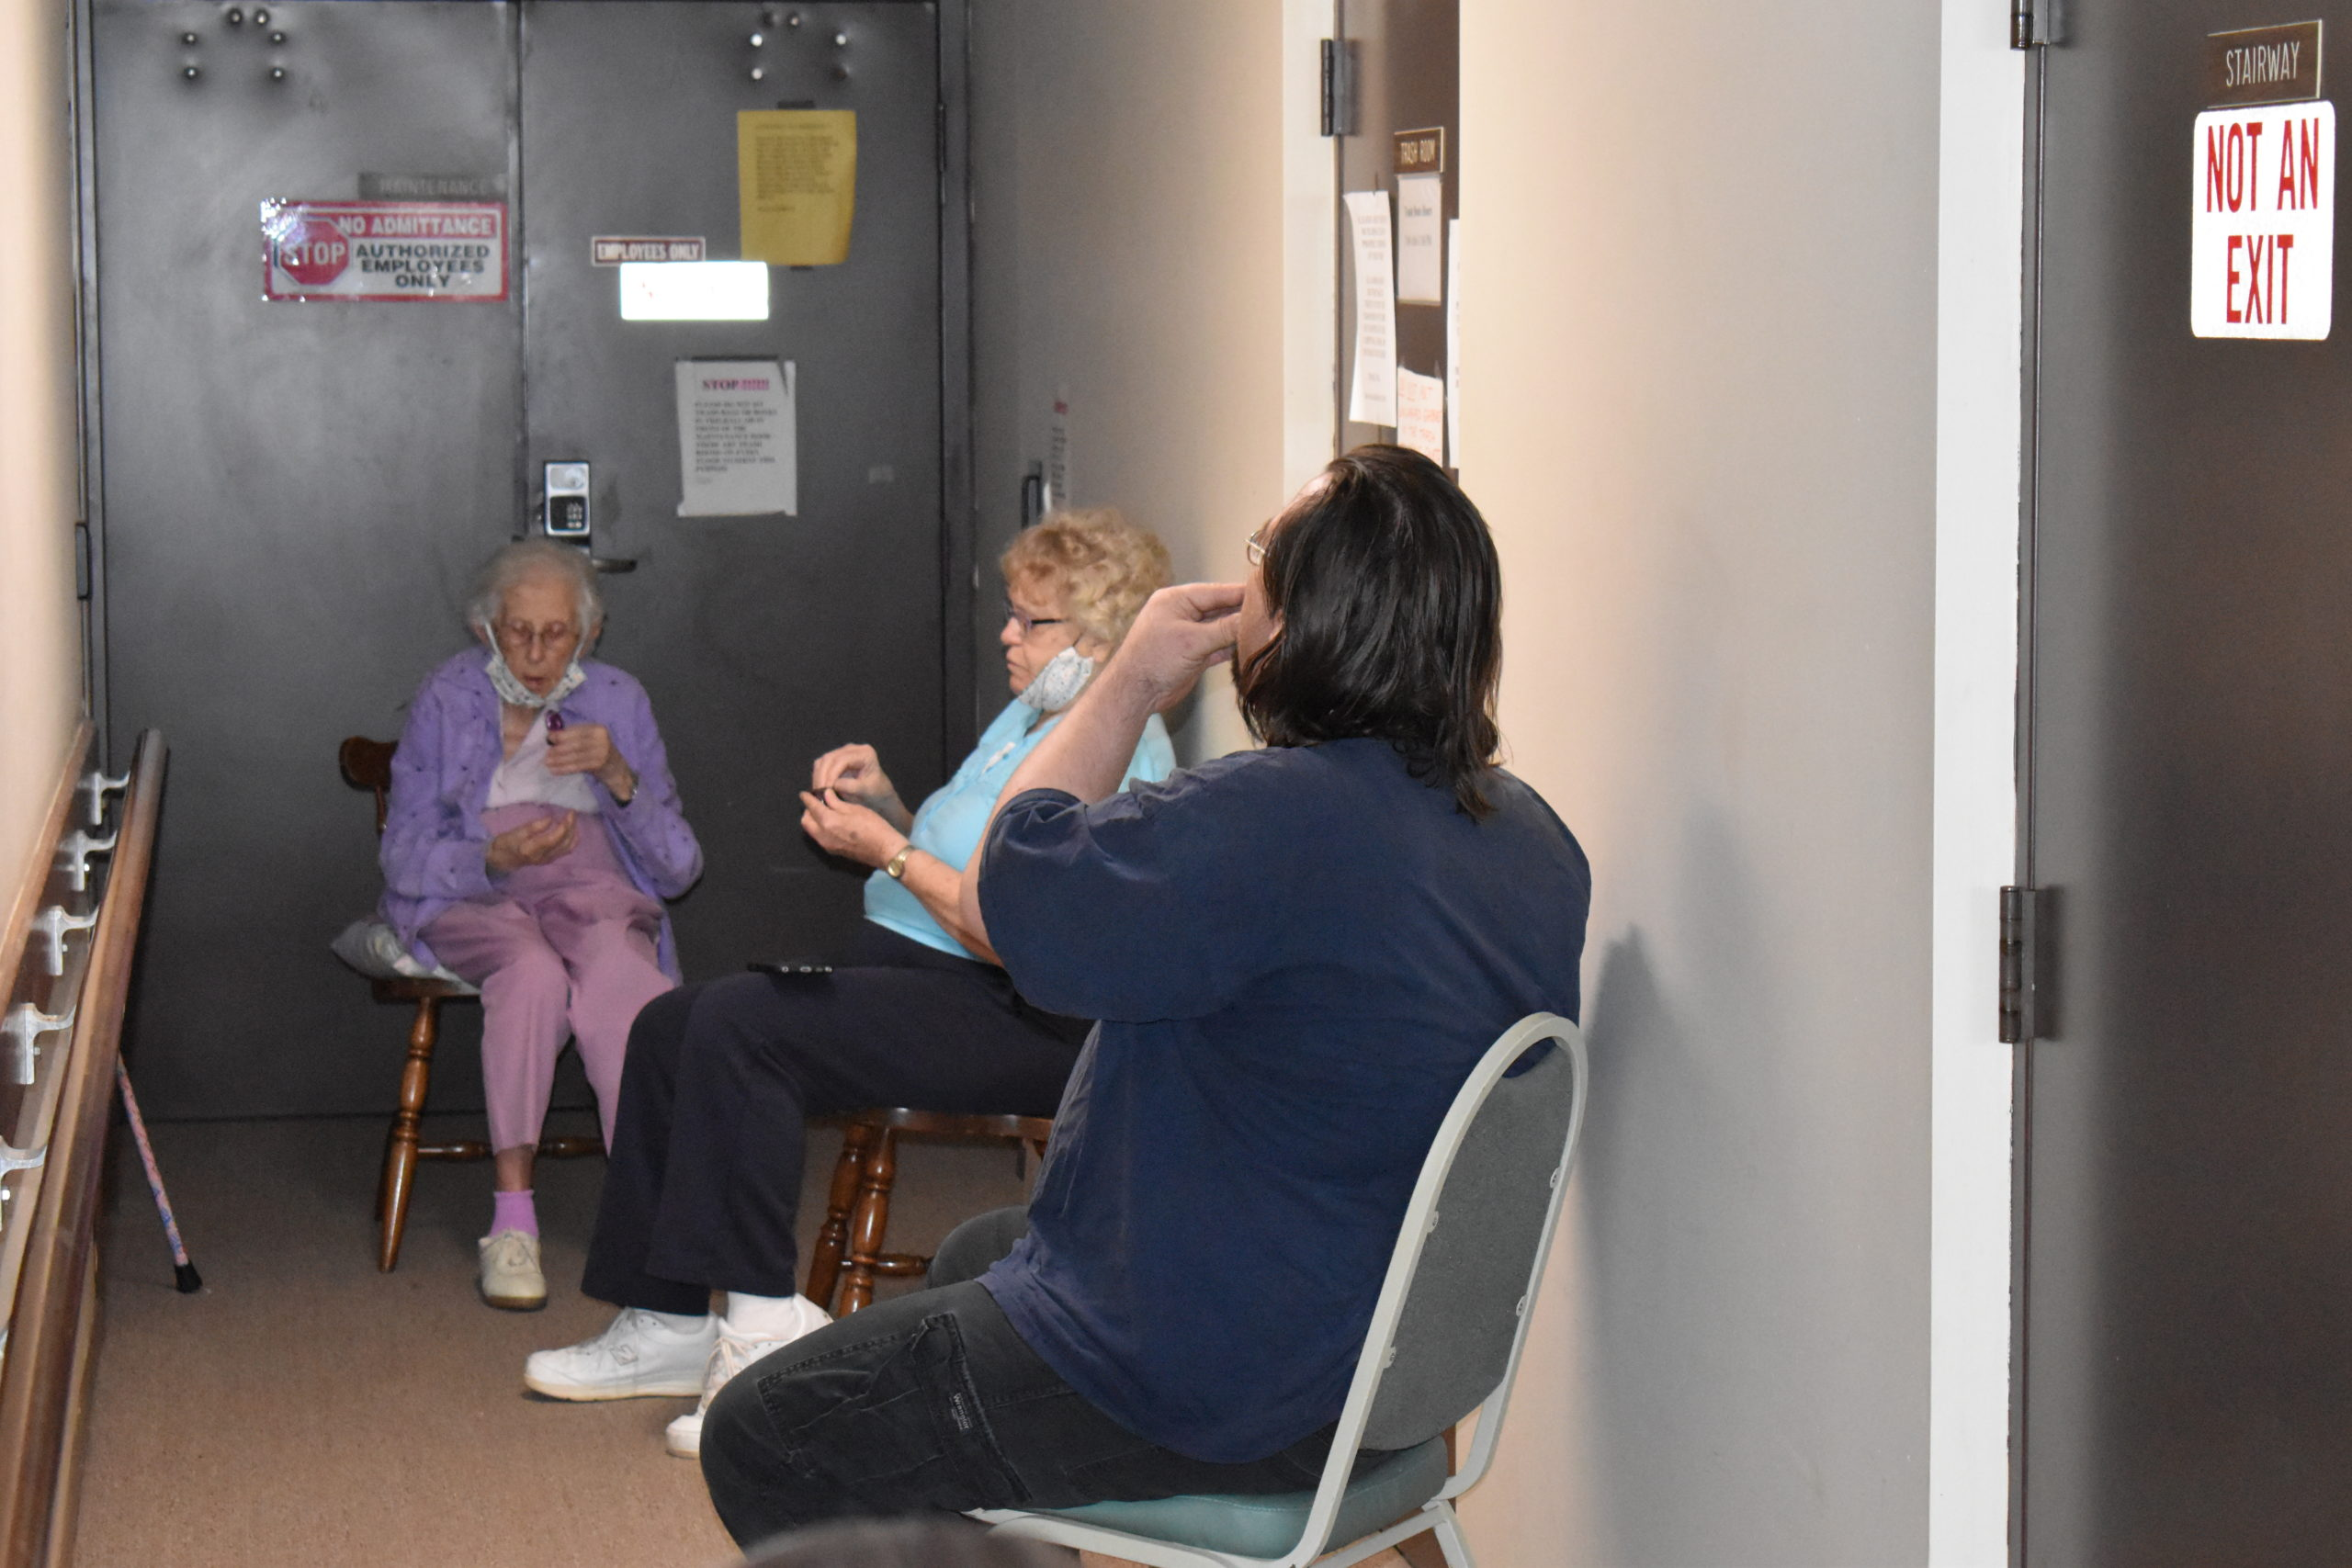 Residents of Valley West apartments, from left, Hazel Howell, Hariett Snyder and Don Armour take communion as they listen to a church service.